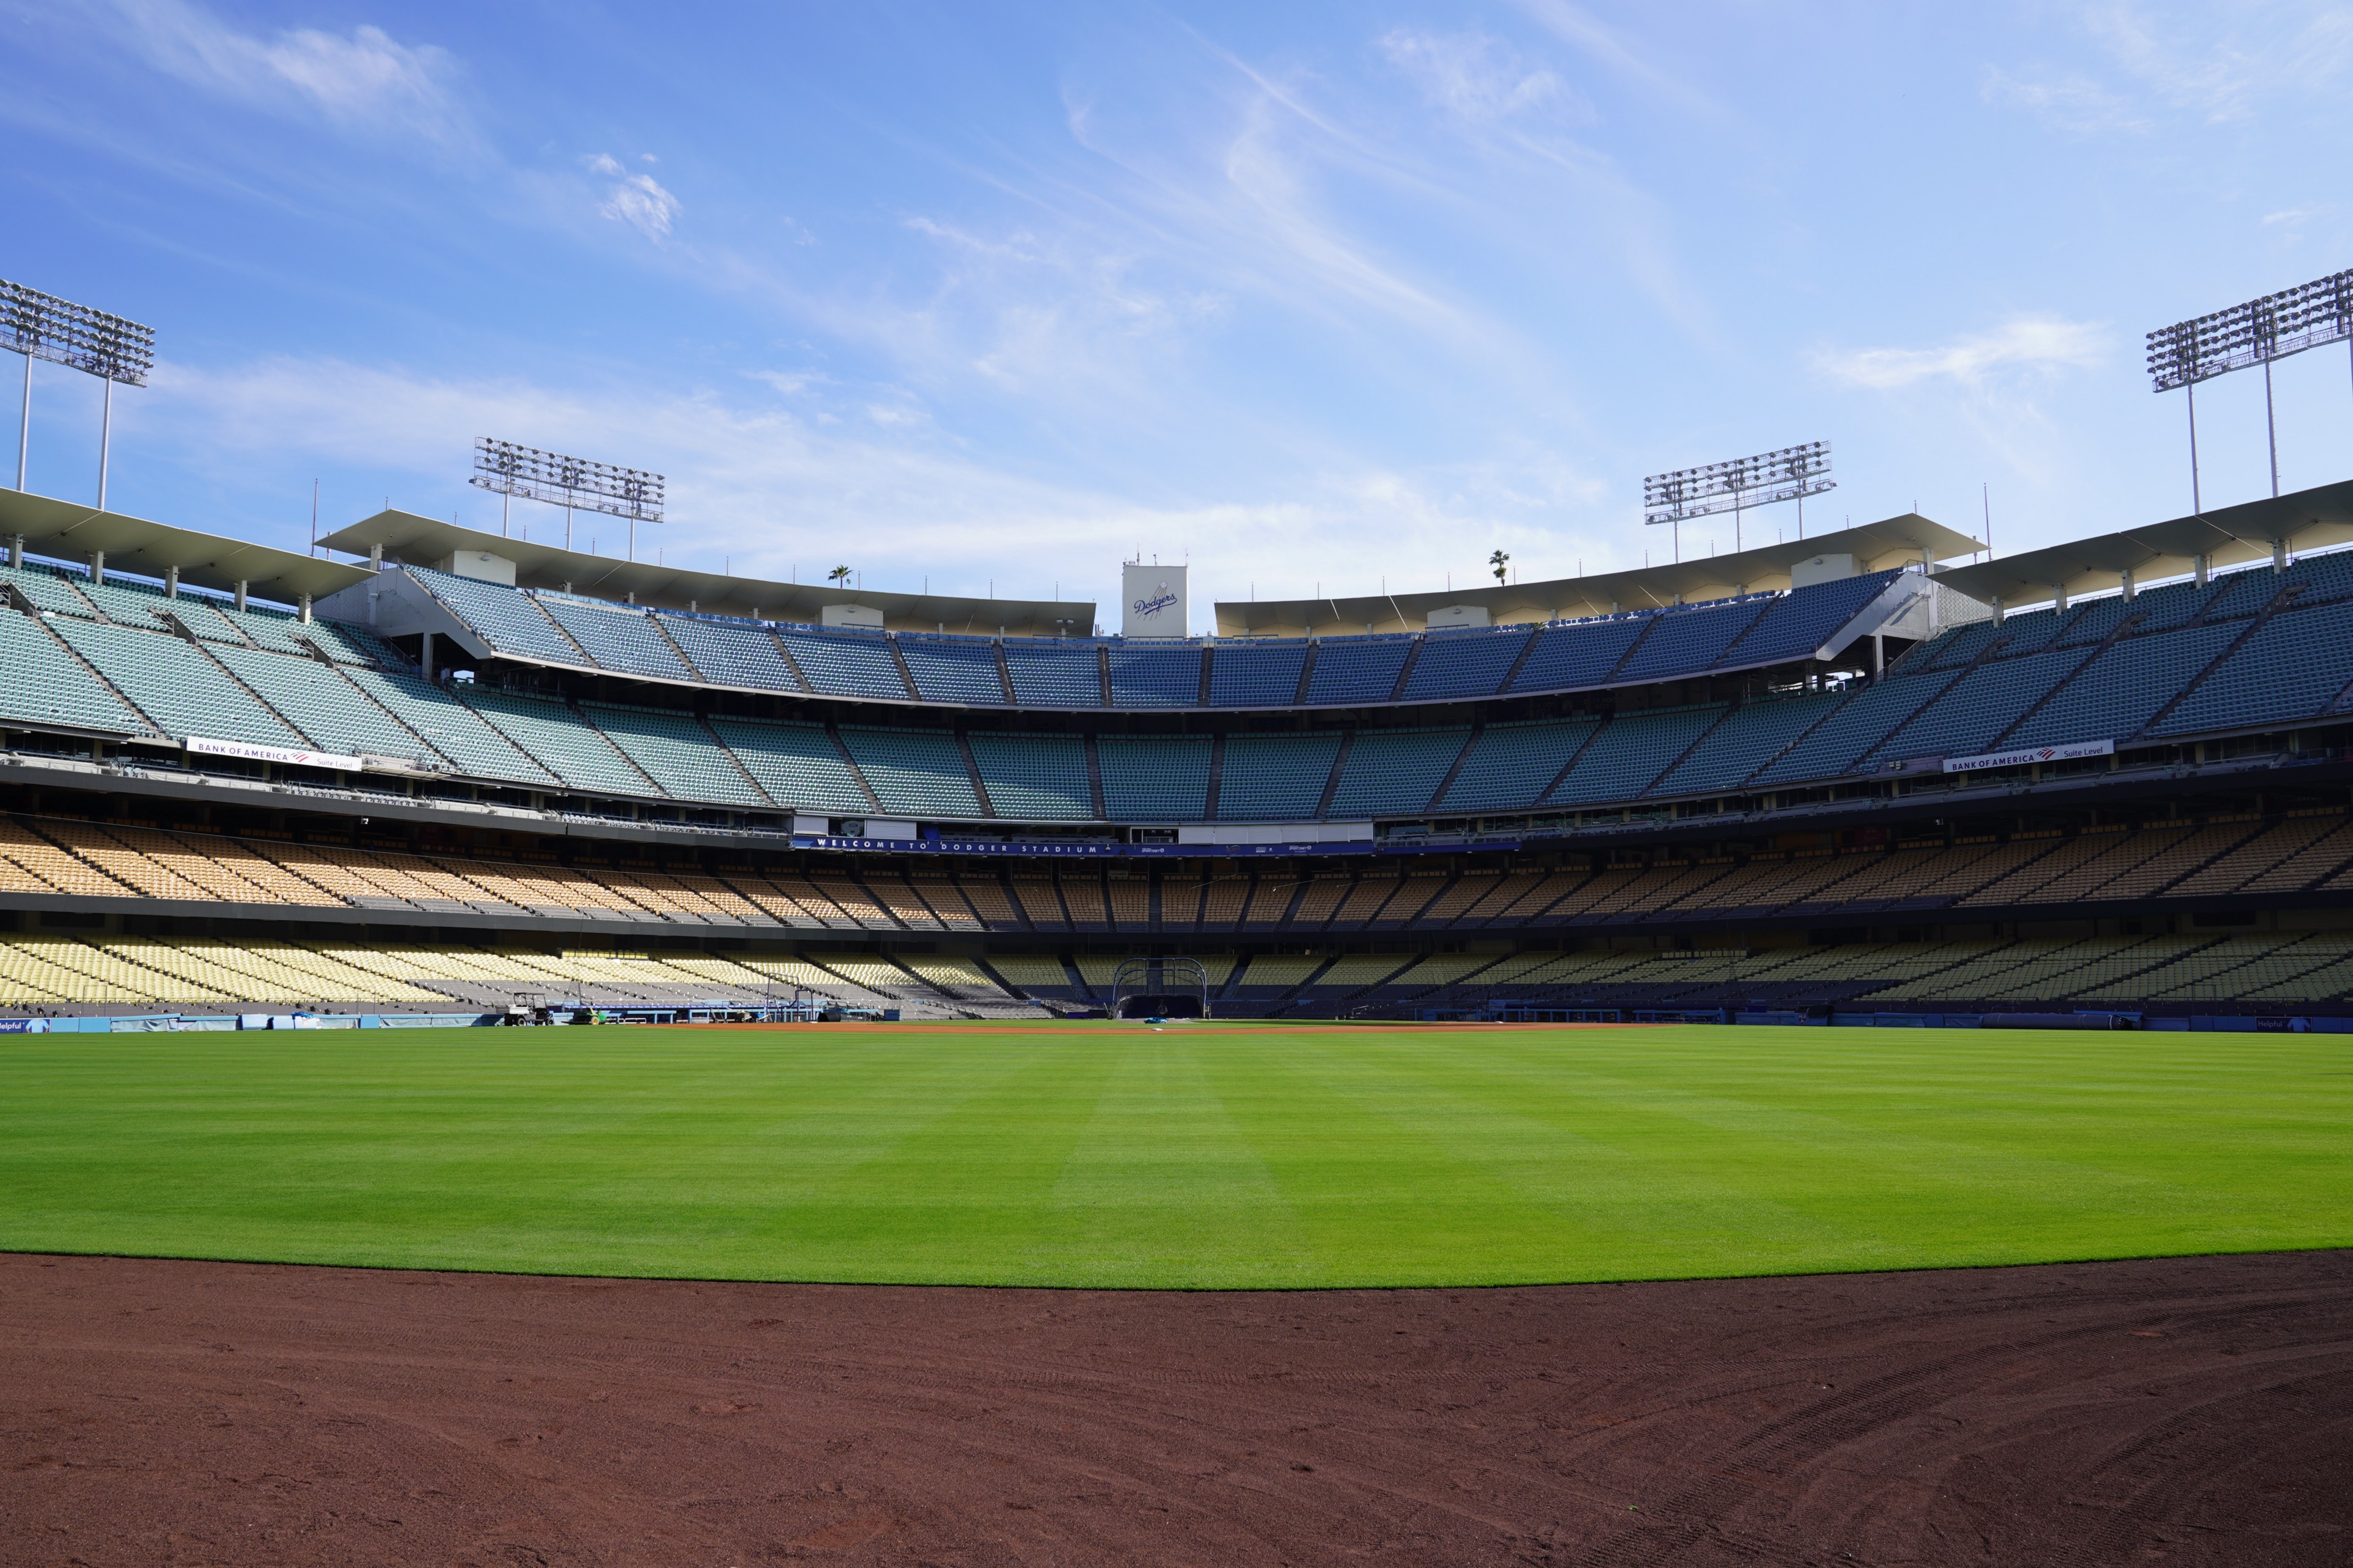 fans can claim seats at dodger stadium